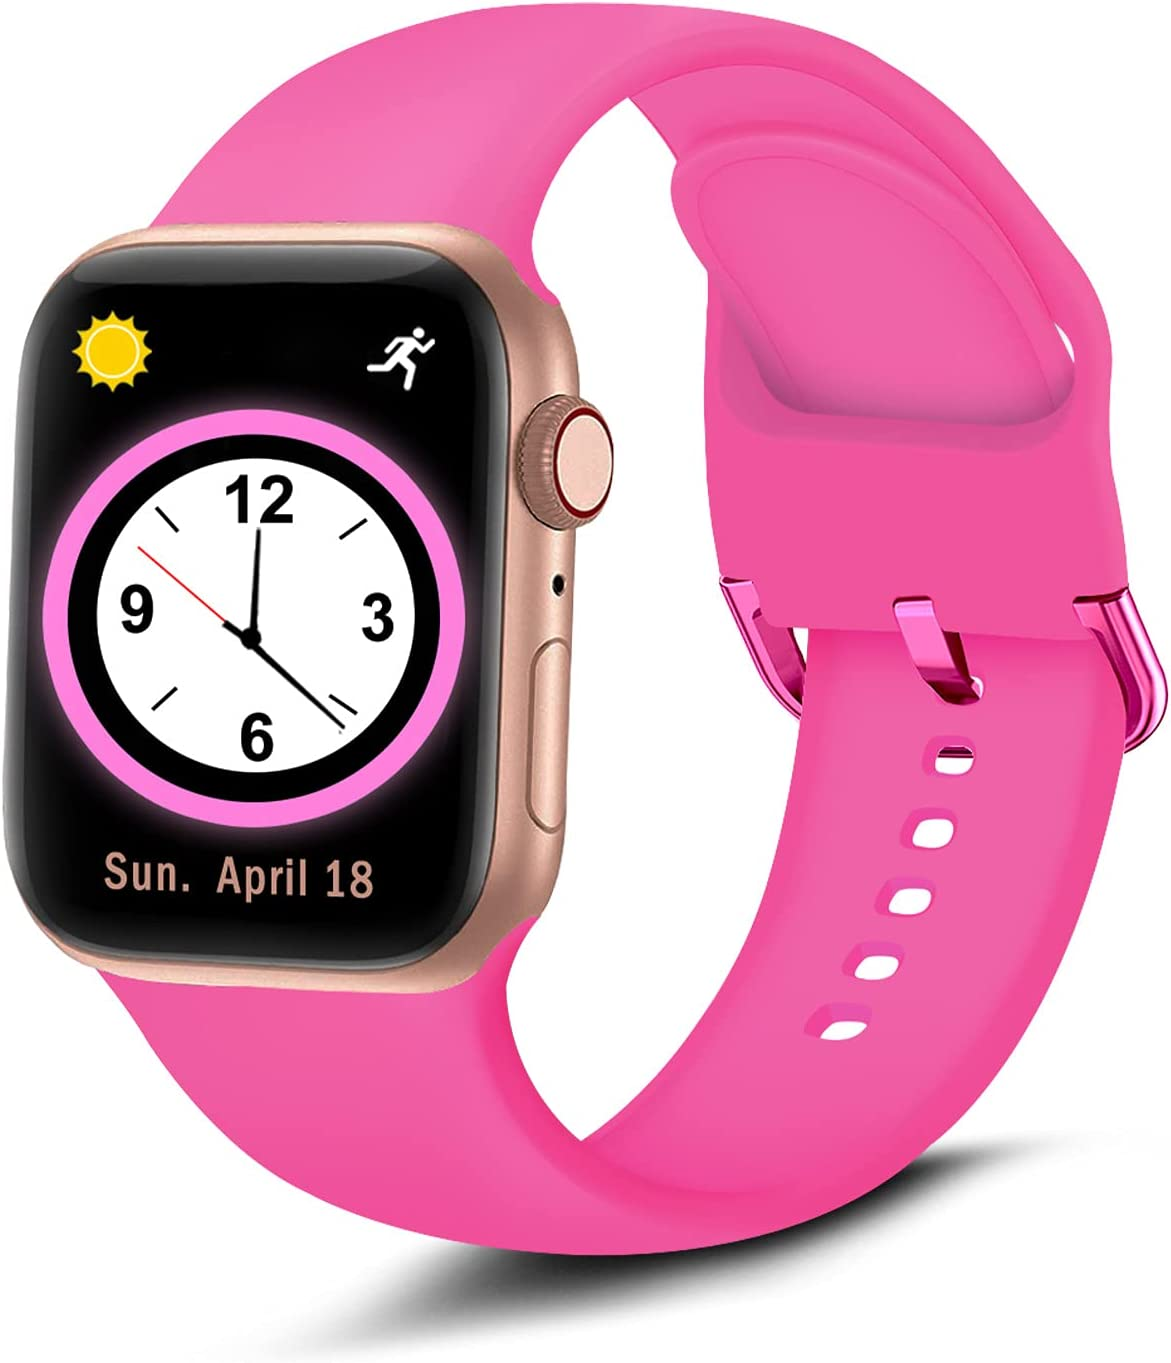 Brigtlaiff Compatible with Apple Watch Bands 38mm 40mm 42mm 44mm, Soft Silicone Sport Replacement Women Men Strap with Unique Colors Clasp for iWatch Series 6 5 4 3 2 1 SE - 42mm 44mm, Hot Pink